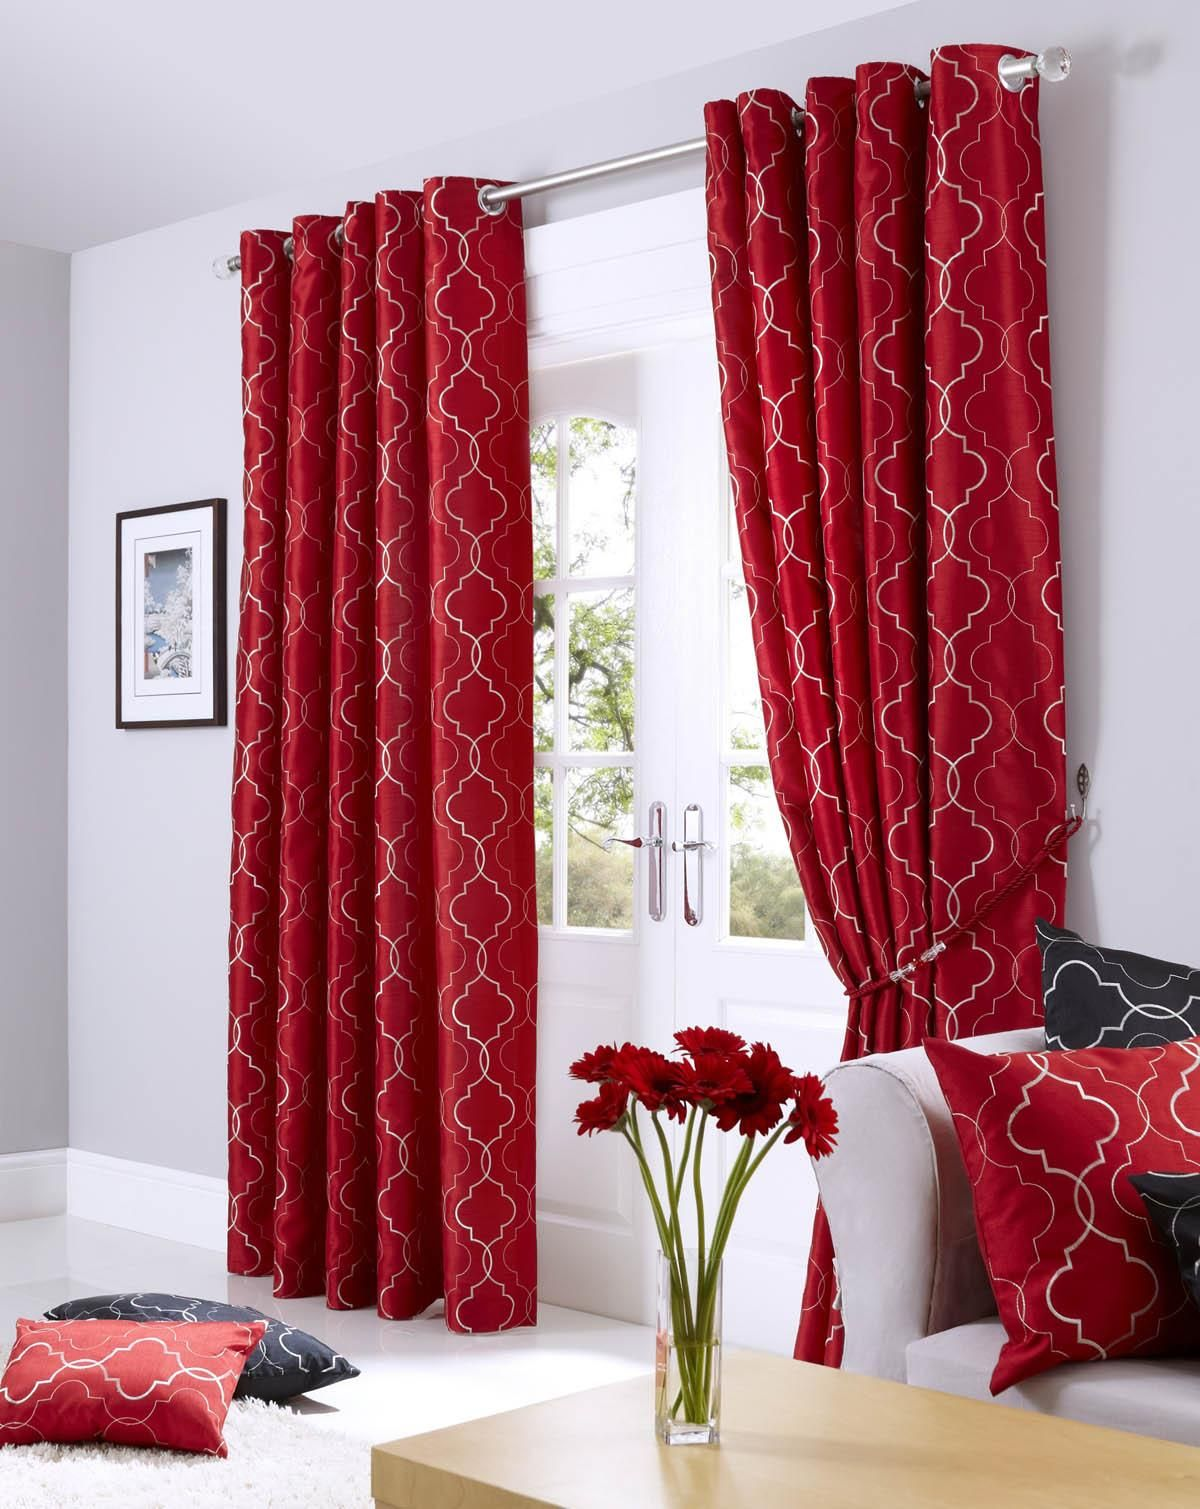 The Vivid Tones Of Midtown Eyelet Lined Curtains Red Add Drama To Any Room They Adorn